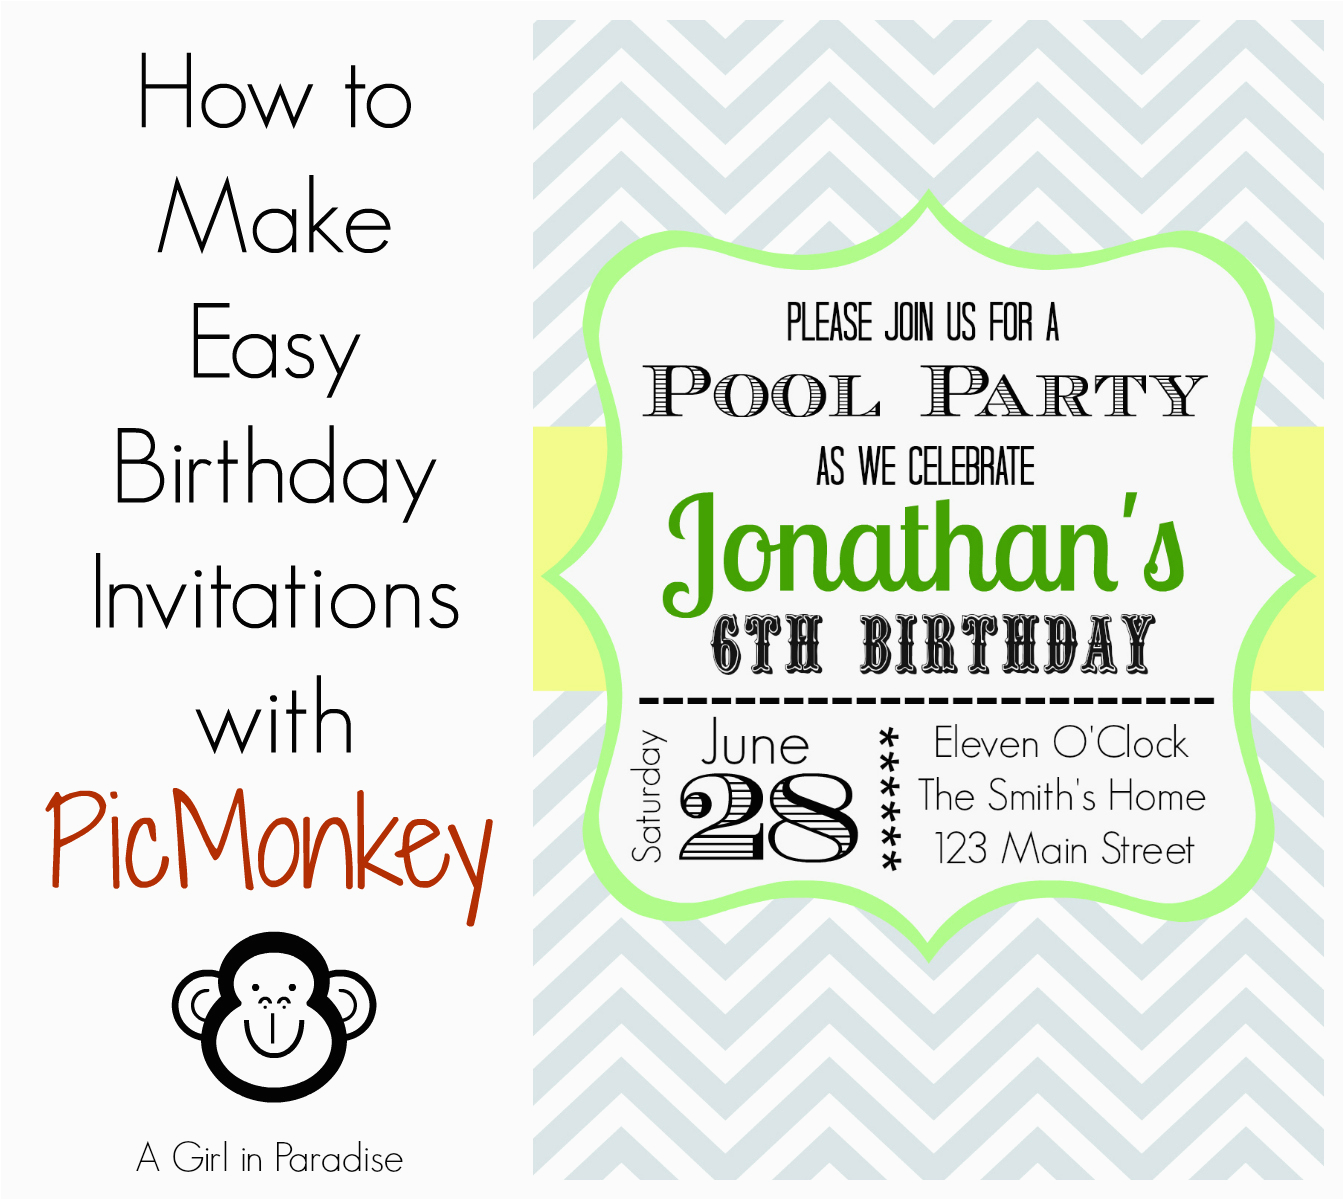 How to Print Birthday Invitations for Free How to Make Birthday Invitations In Easy Way Birthday